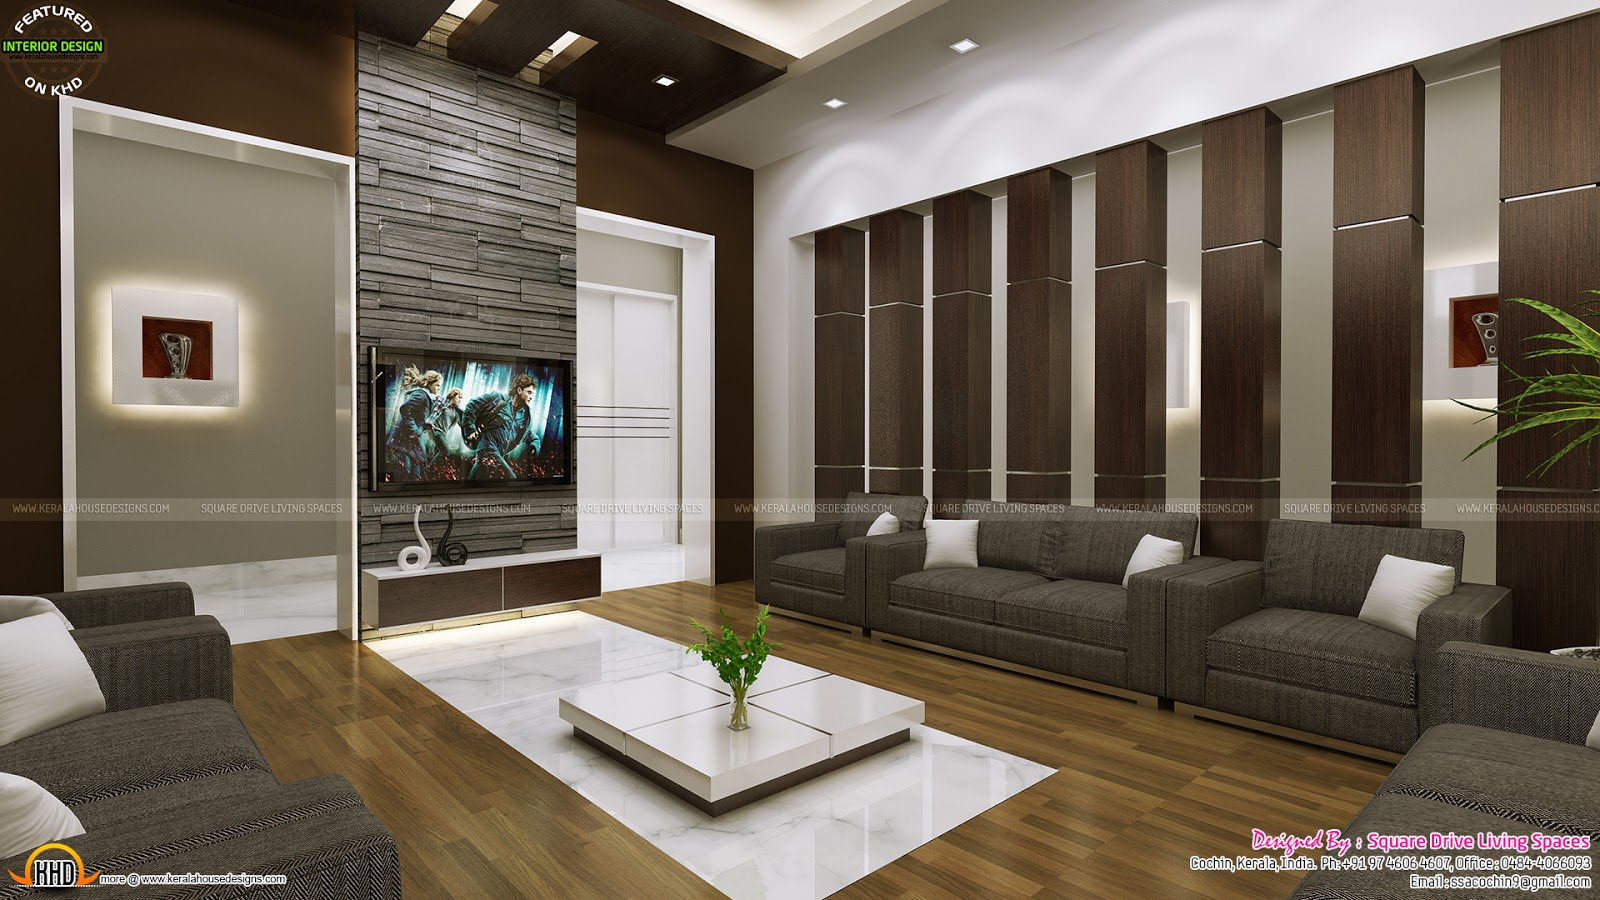 Attractive home interior ideas kerala home design and for Interior designs at home